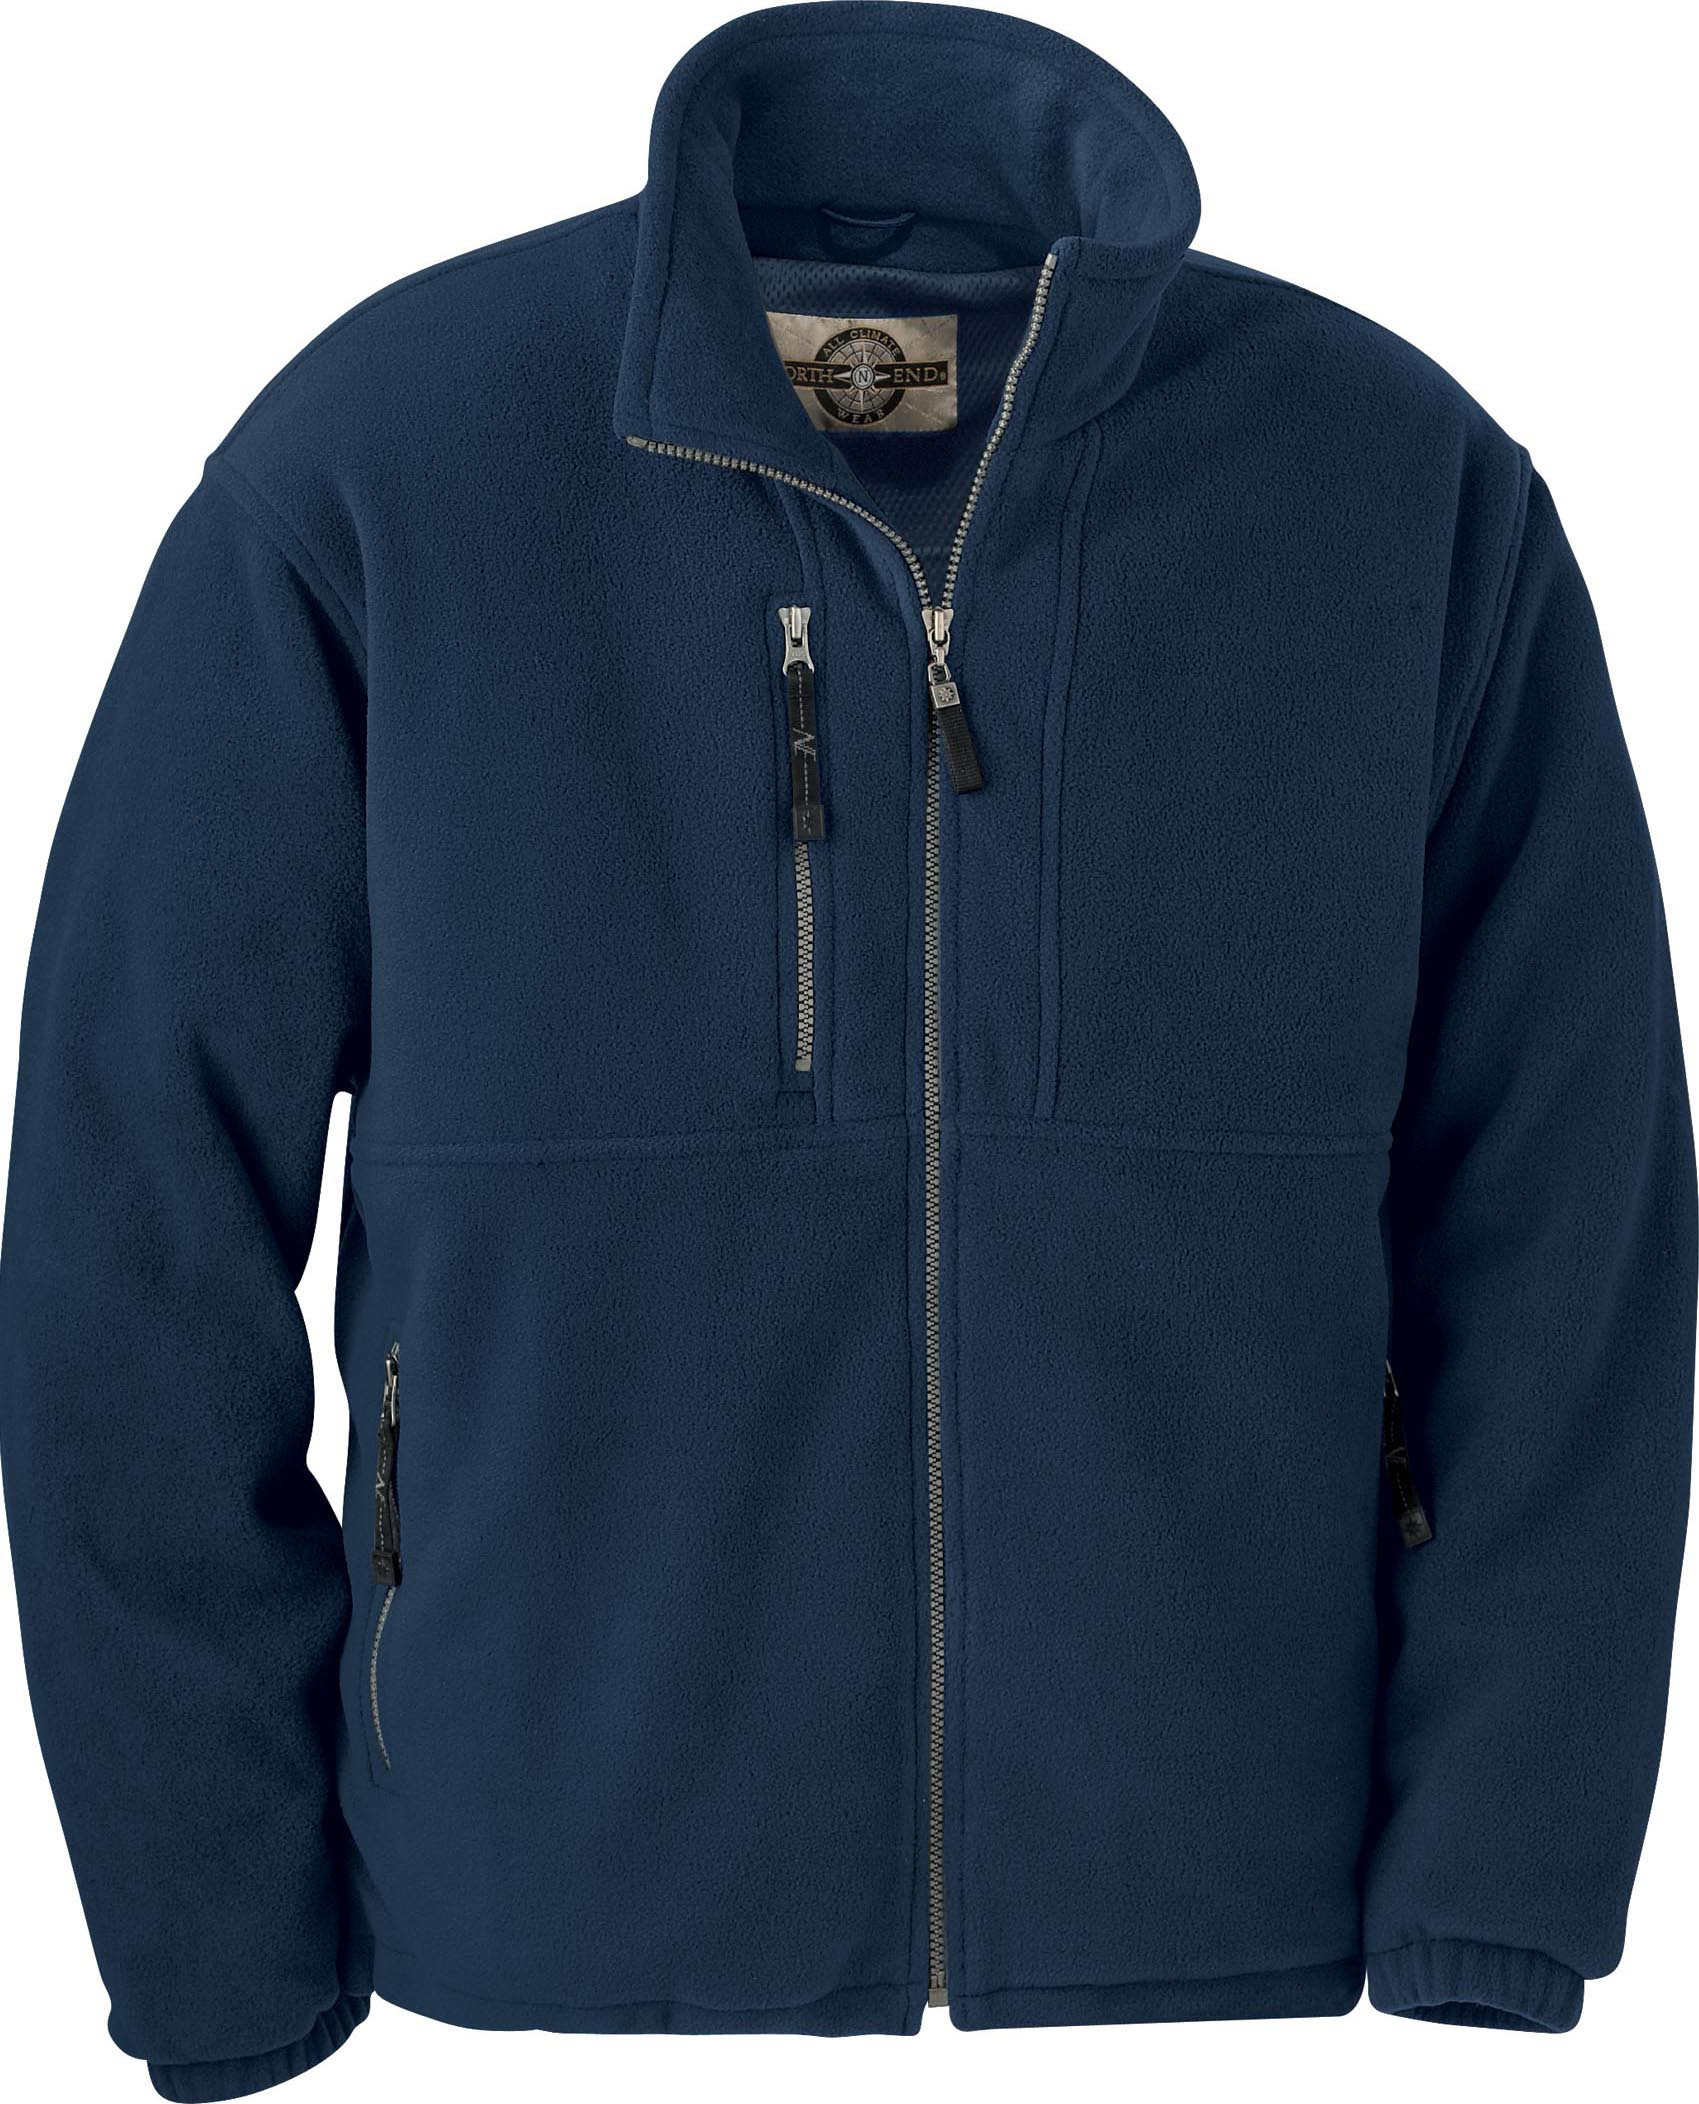 Ash City Poly Fleece 88021 - Men's Fleece Jacket